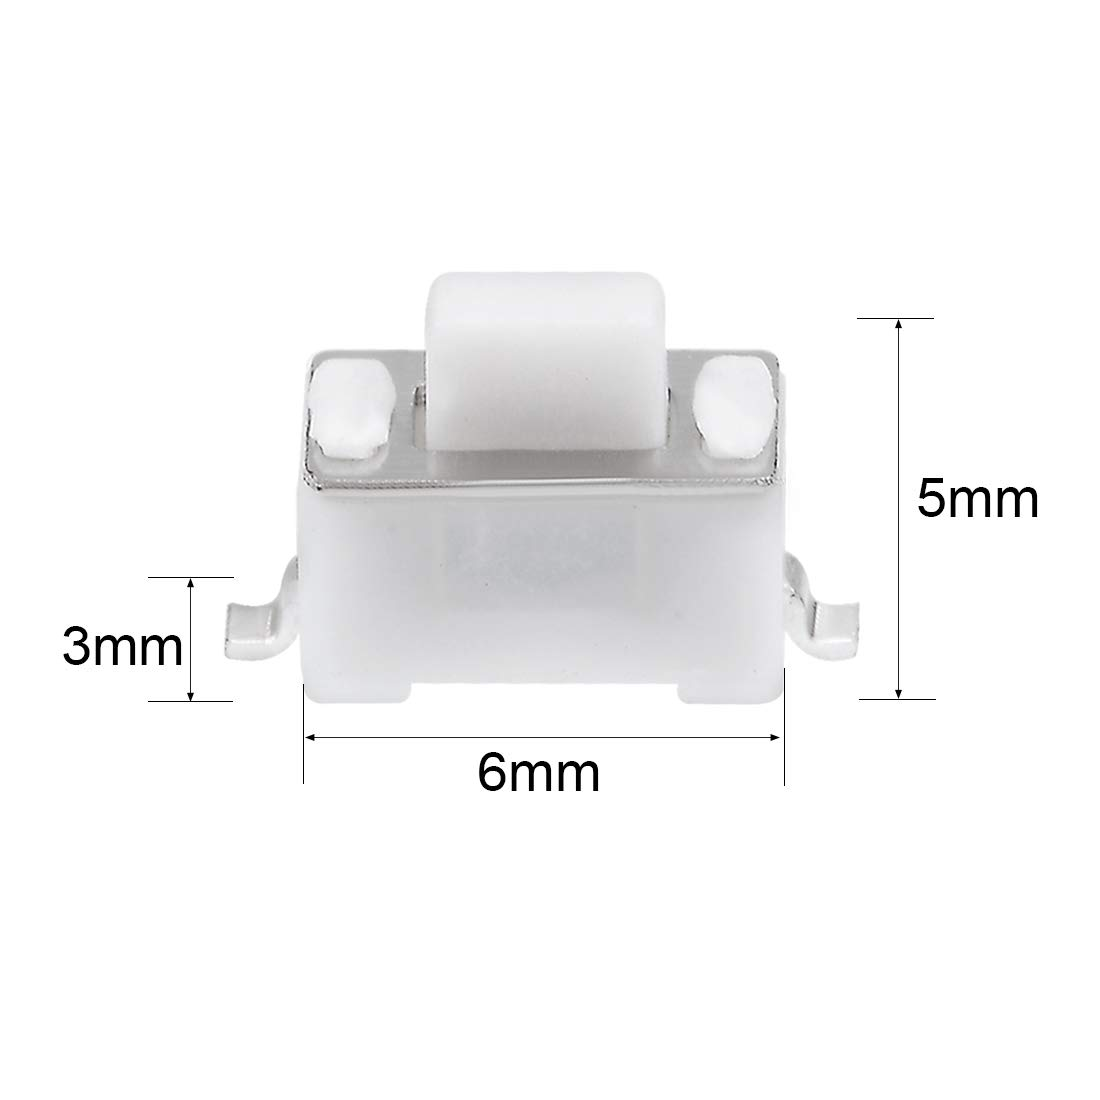 uxcell 3x6x4mm Momentary PCB SMT SMD Rectangle Push Button SPST Tactile Tact Switch White 20PCS